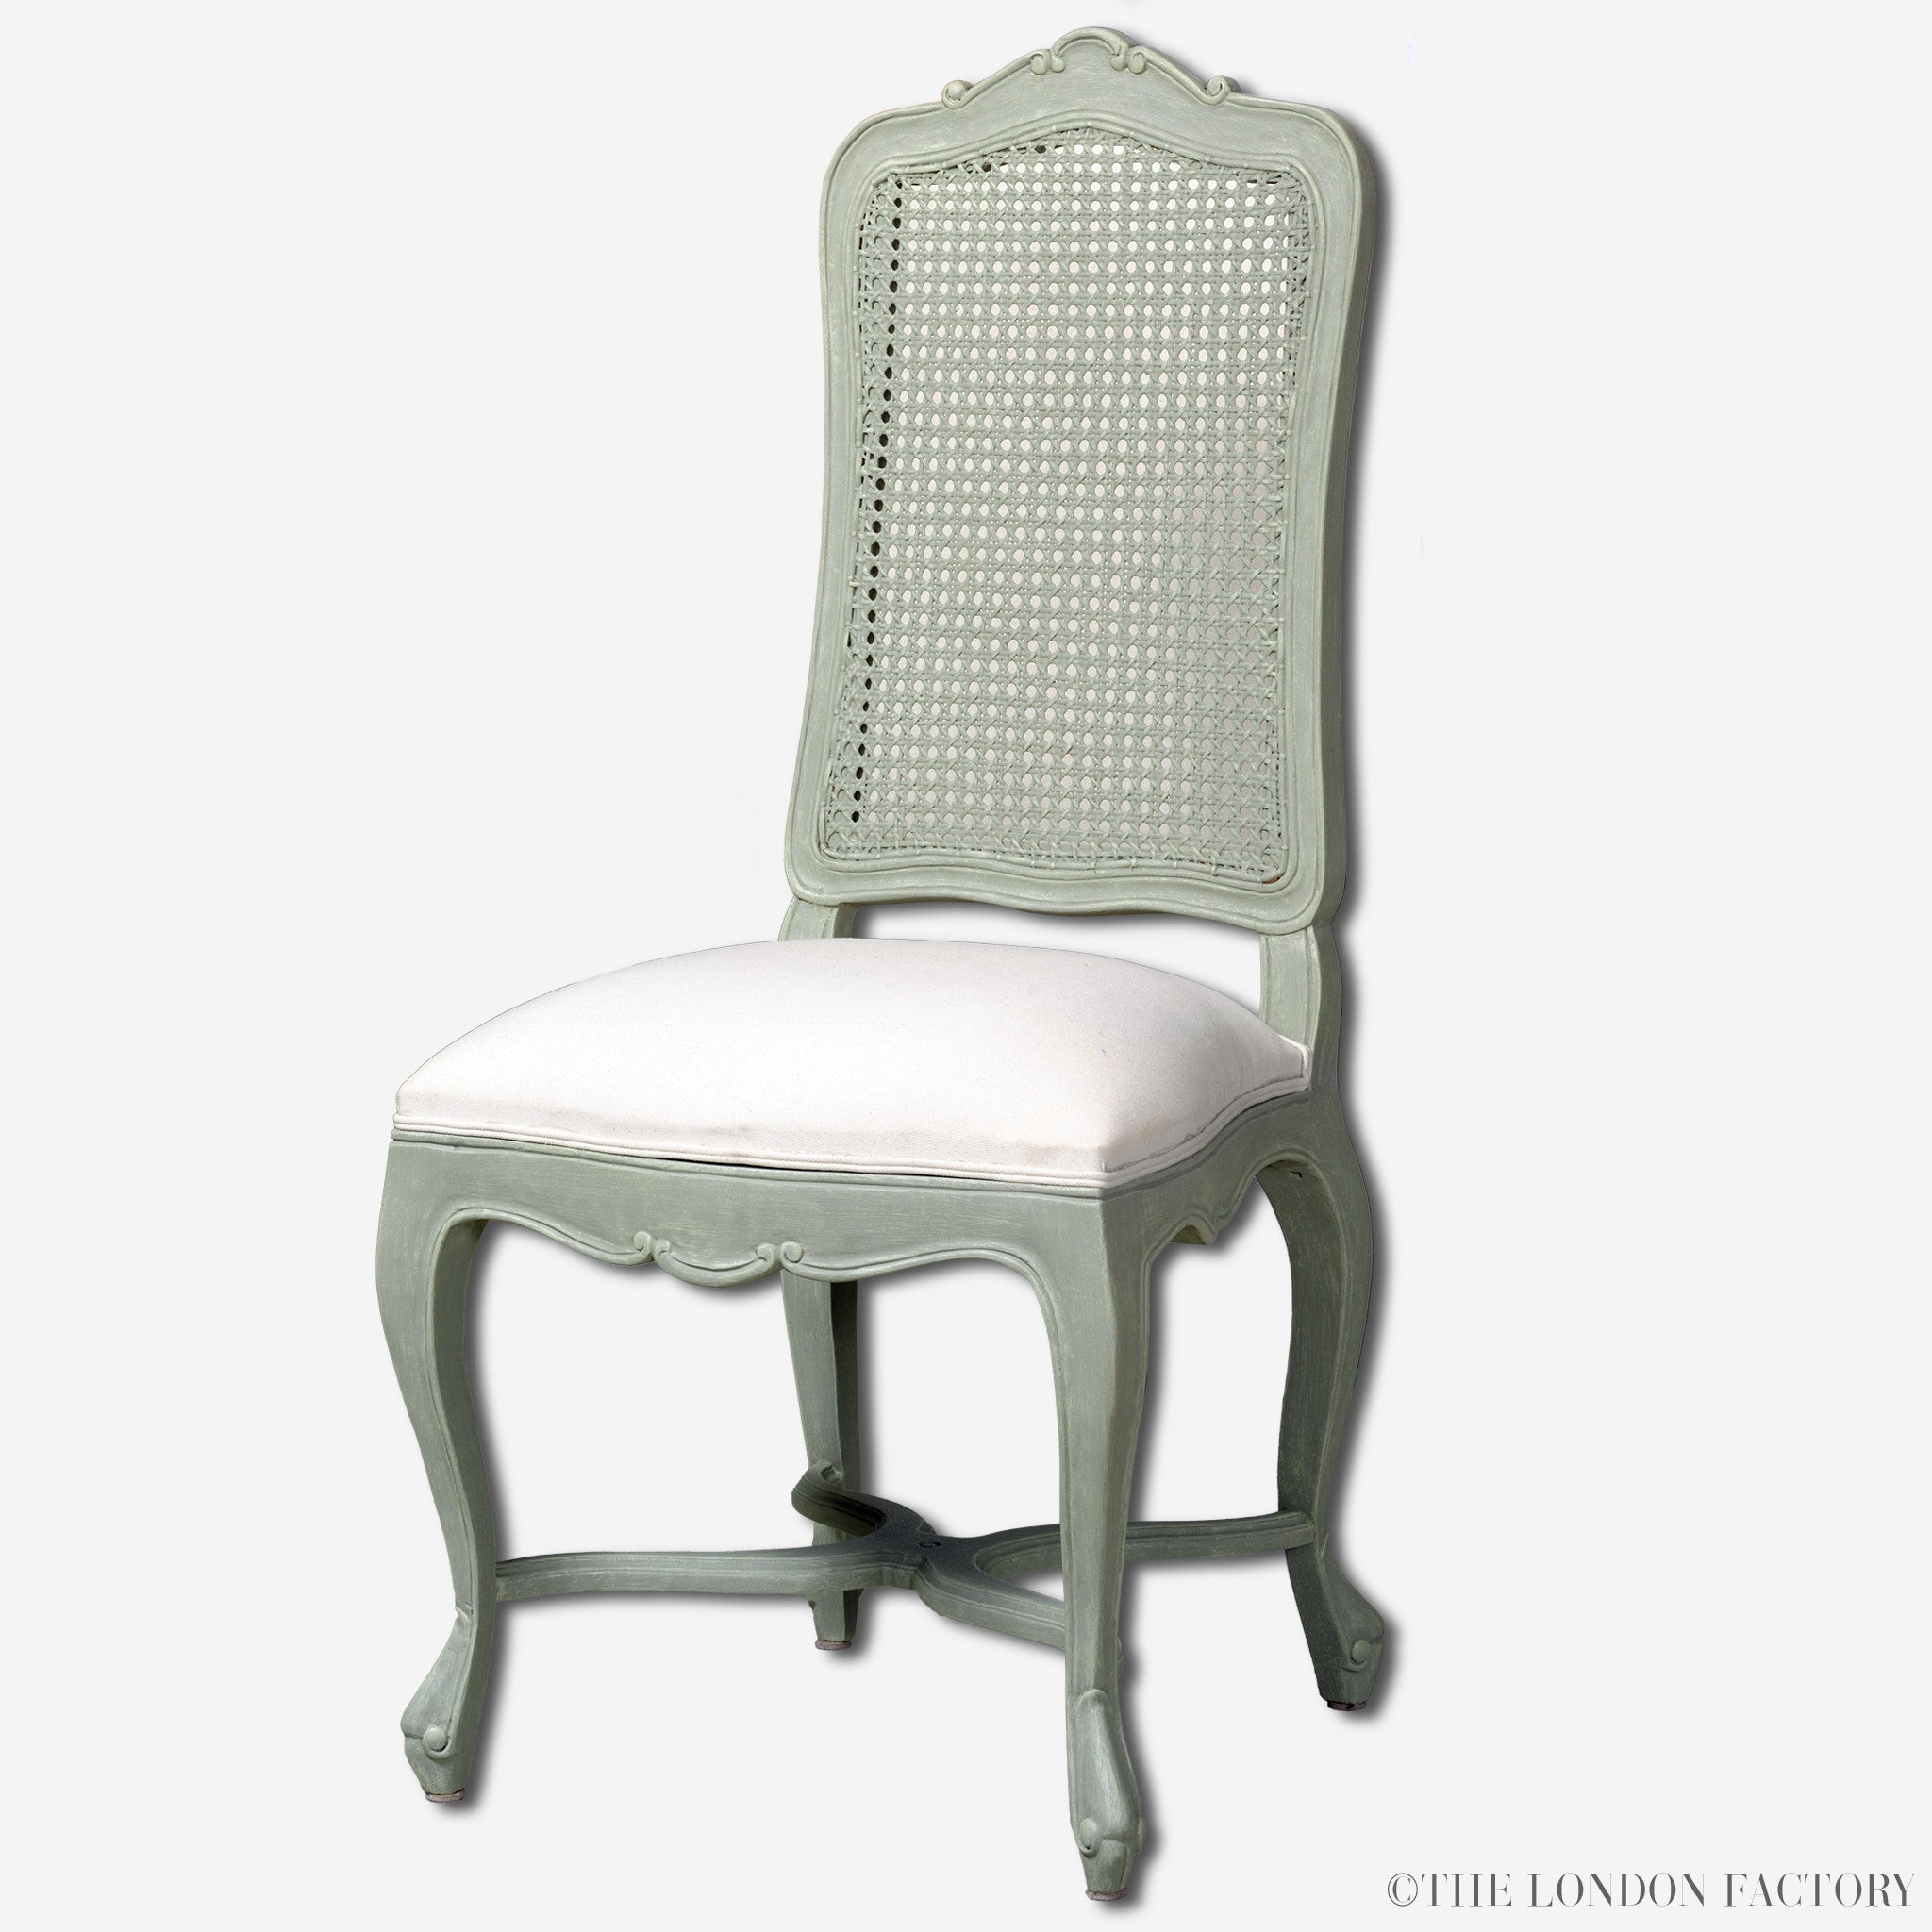 Hyde French Upholstered Seat Cane Back Dining Chair – The London